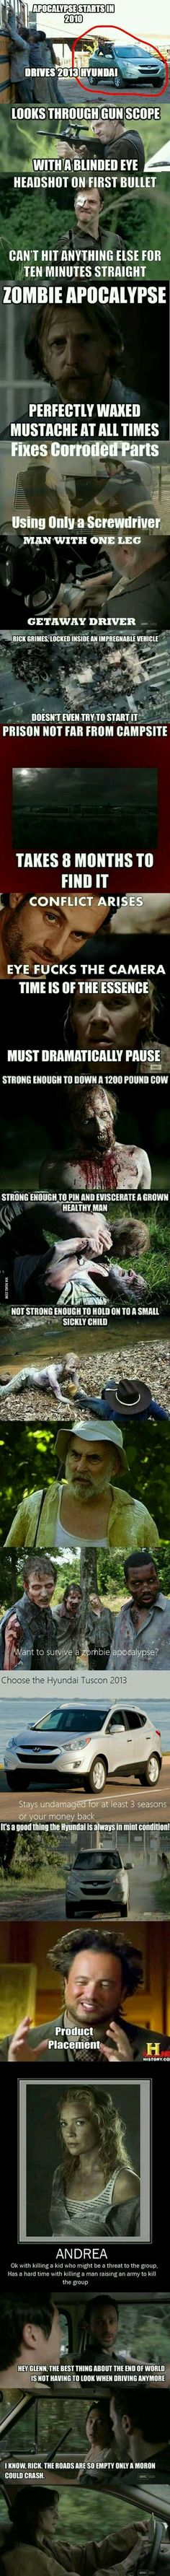 The Walking Dead logic (might contain spoilers)